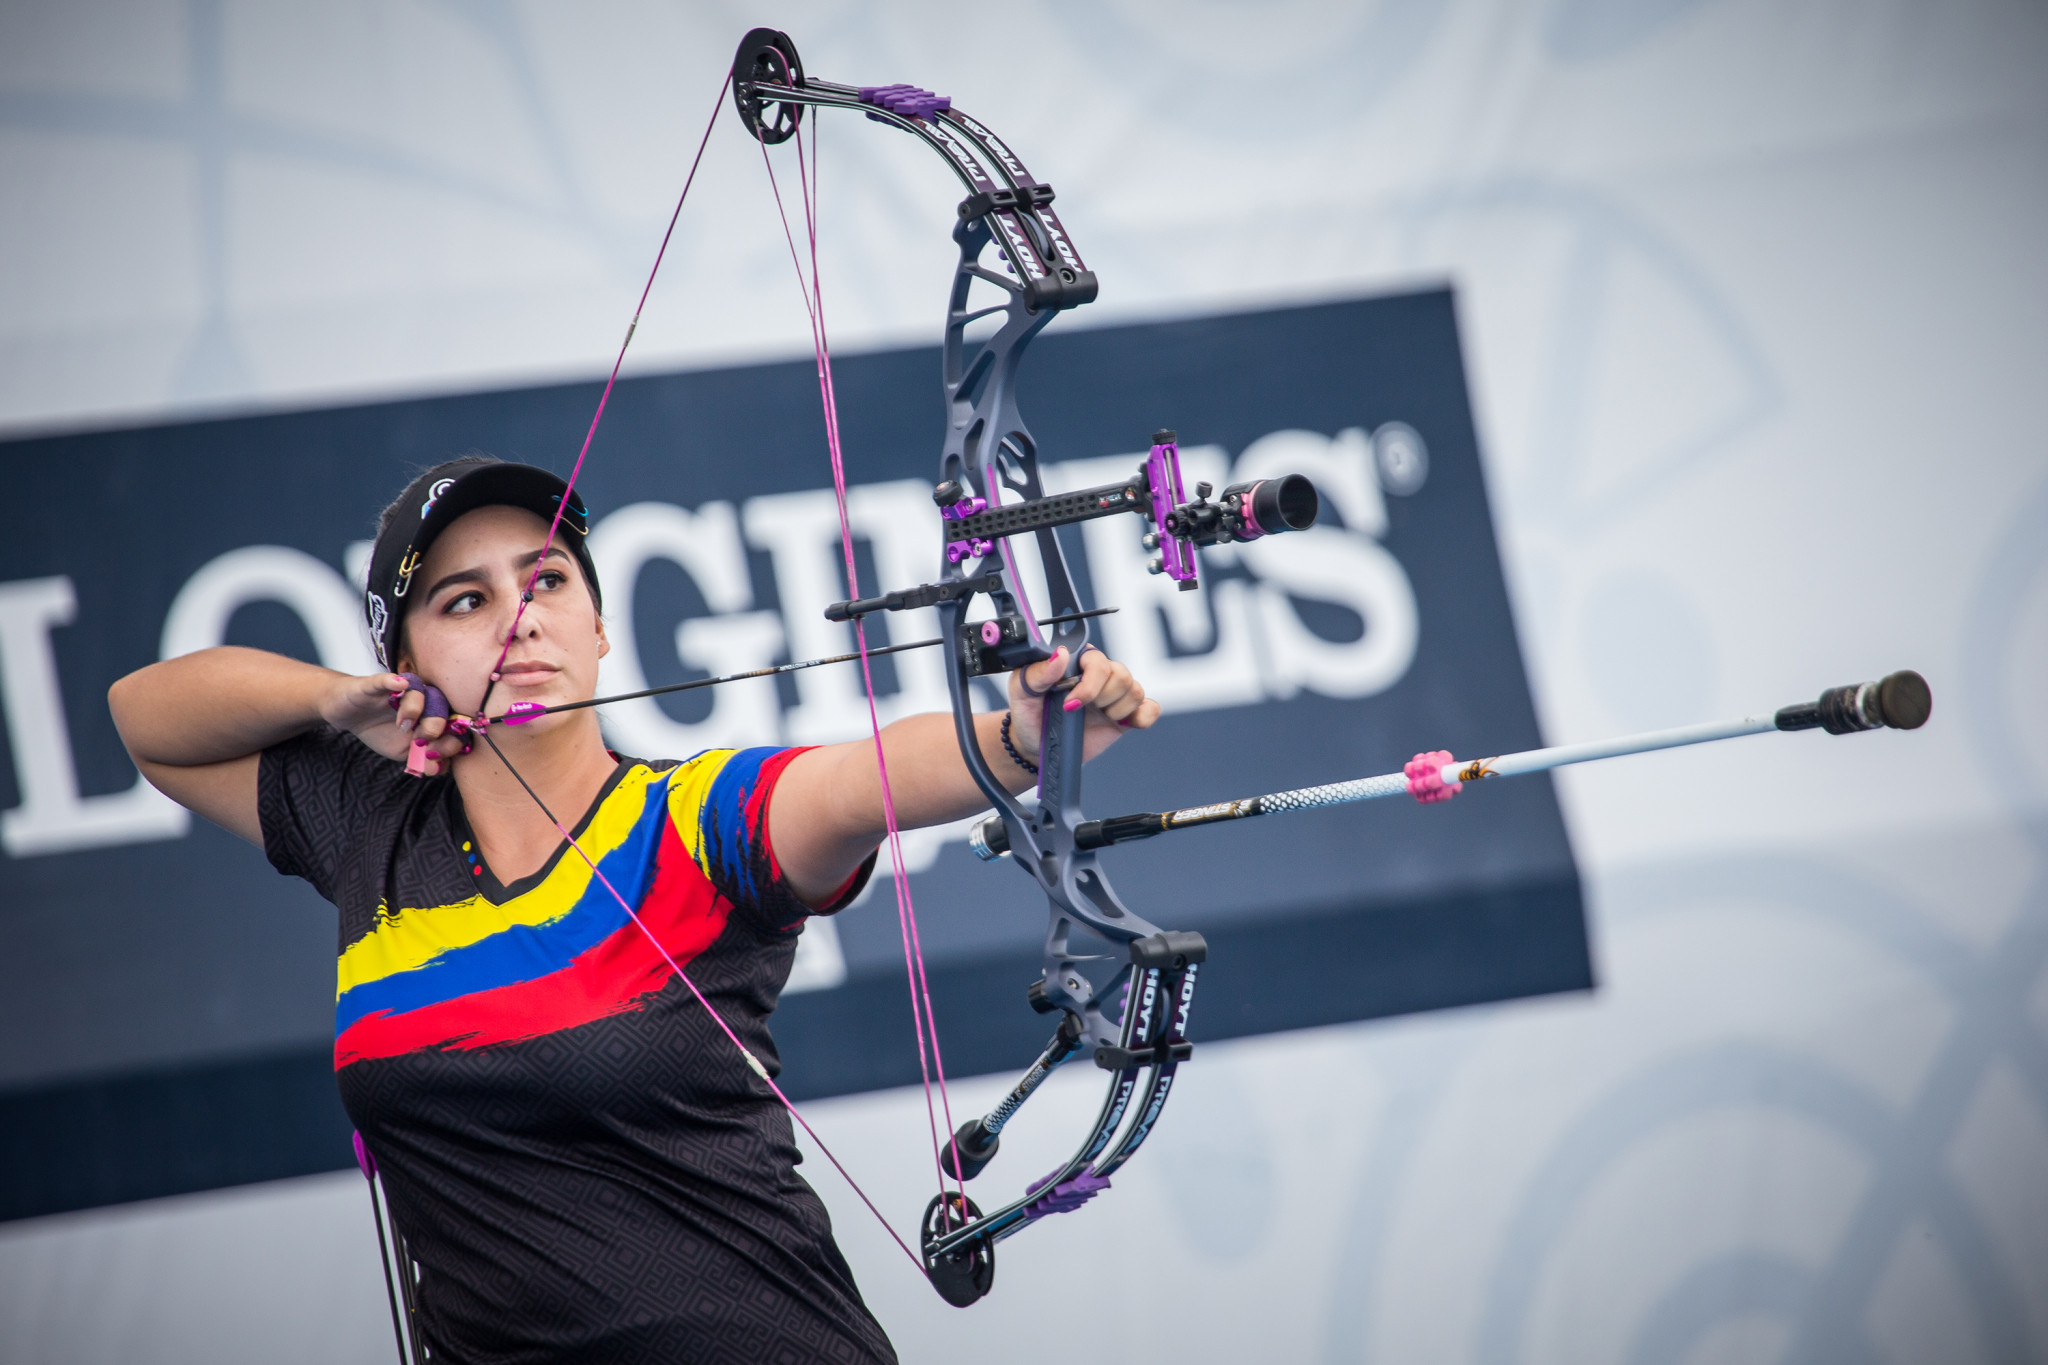 Mexico claim two team golds as first medals decided at Pan and Parapan American Archery Championships